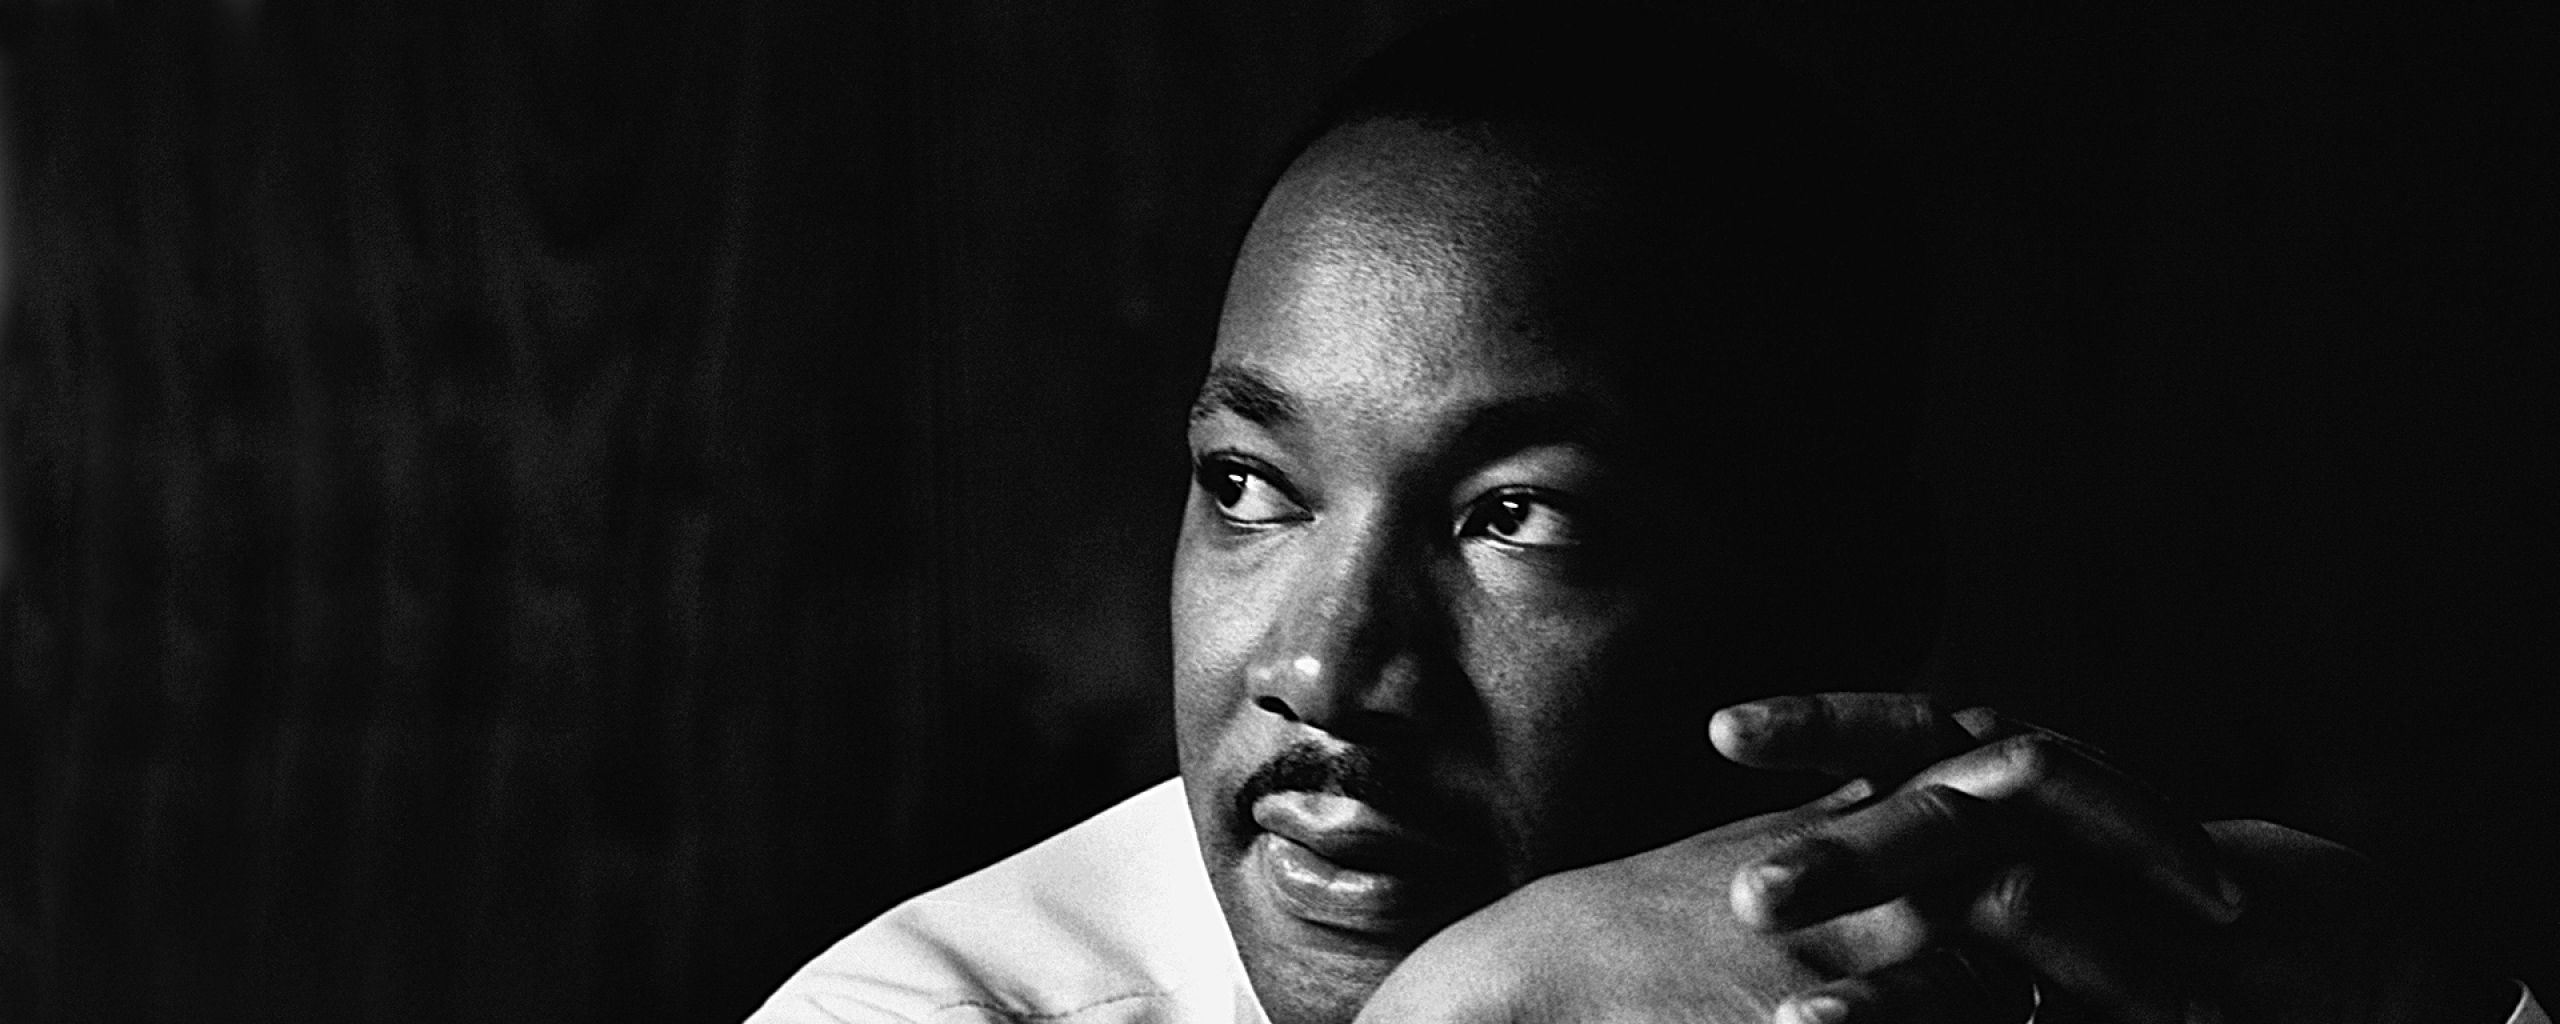 Martin Luther King Wallpaper